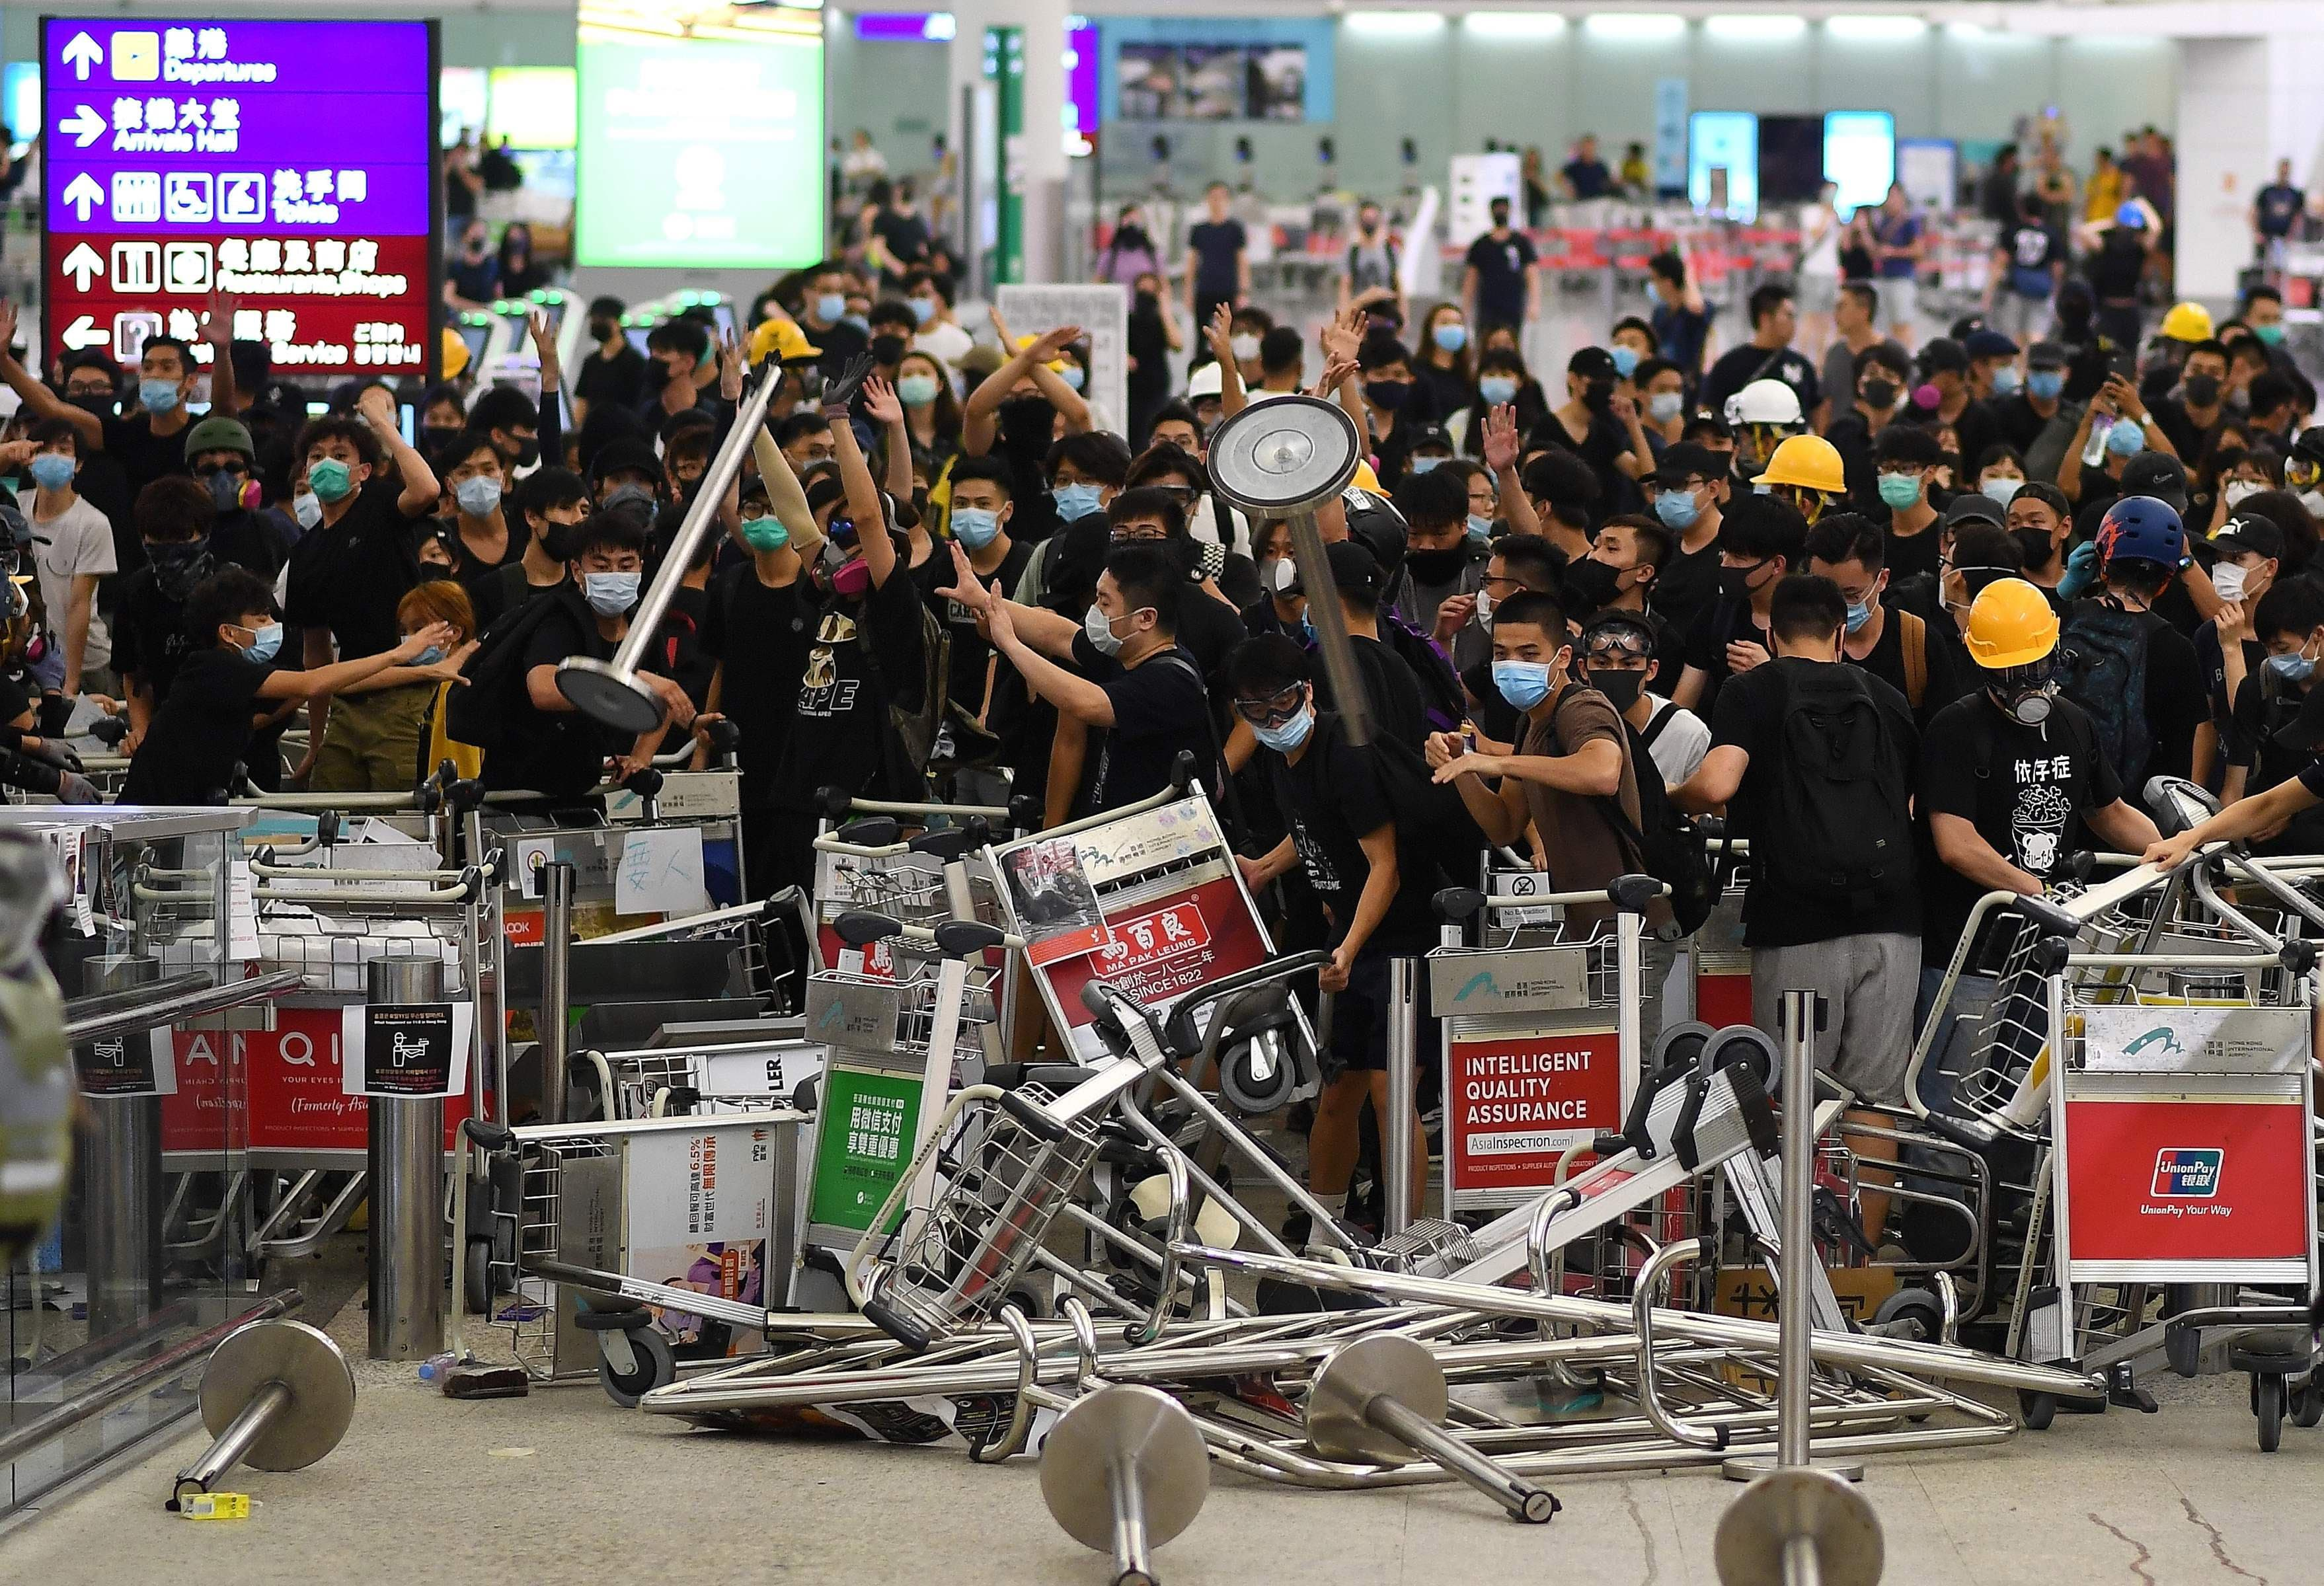 Pro-democracy protestors block the entrance to the airport terminals after a scuffle with police at Hong Kong's international airport on Tuesday. — AFP